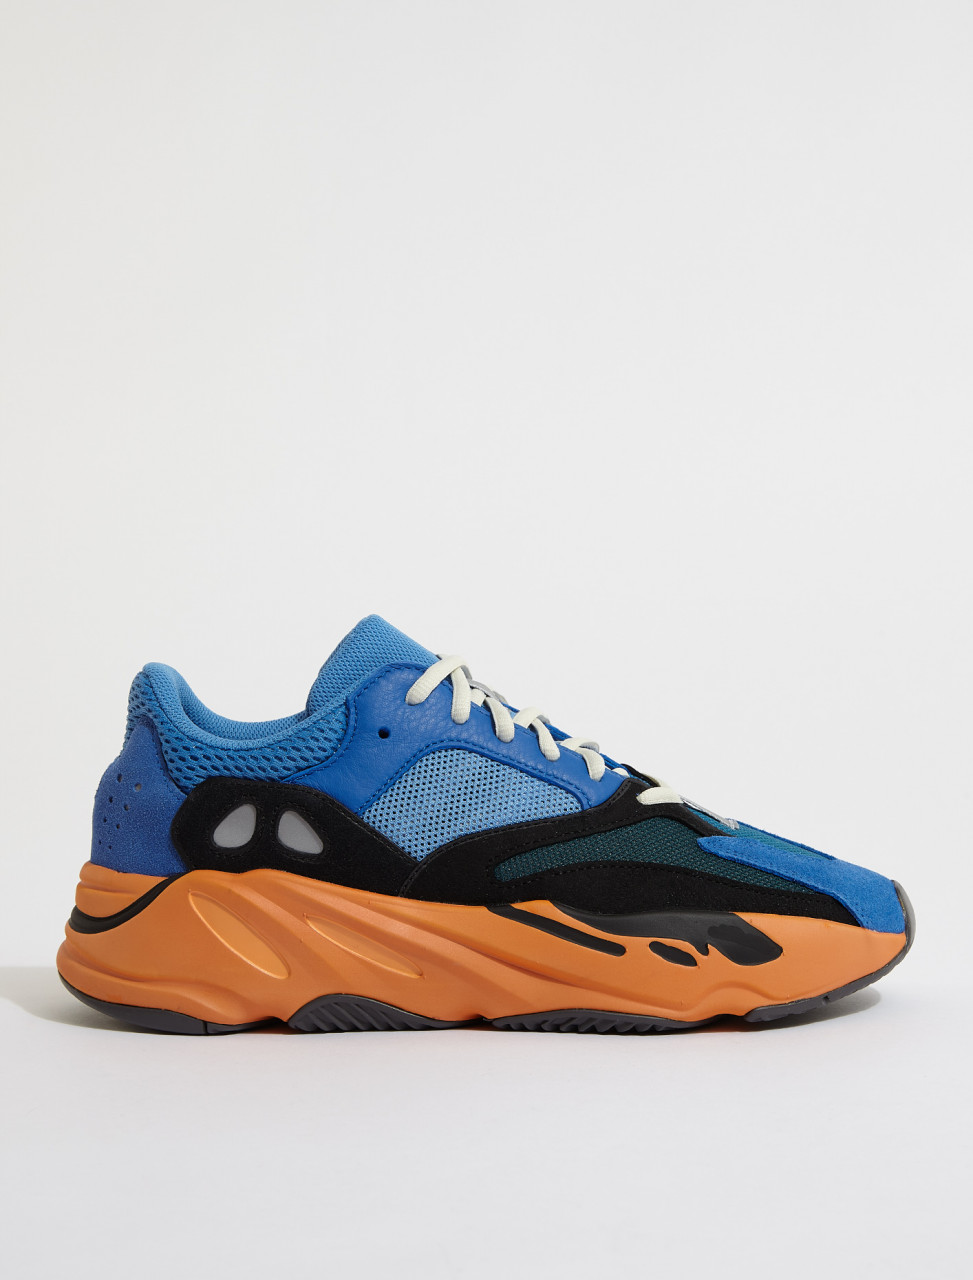 GZ0541 ADIDAS YEEZY BOOST 700 BRIGHT BLUE 1